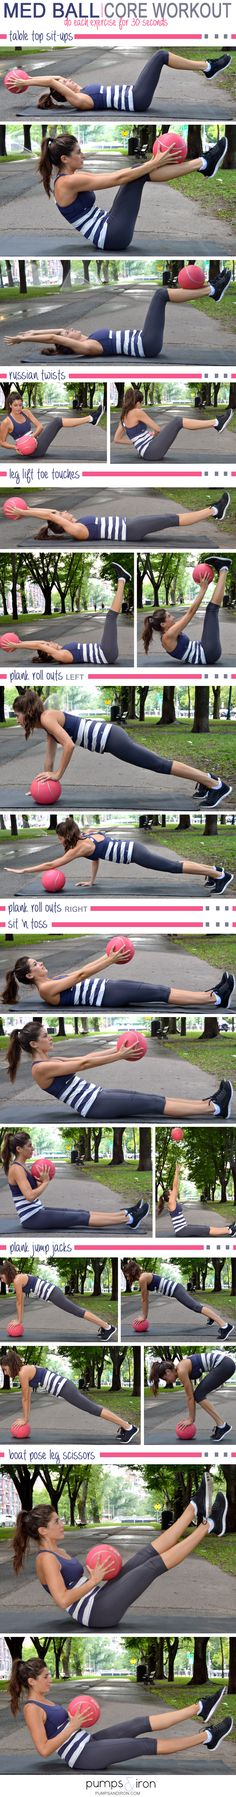 med ball core workout.